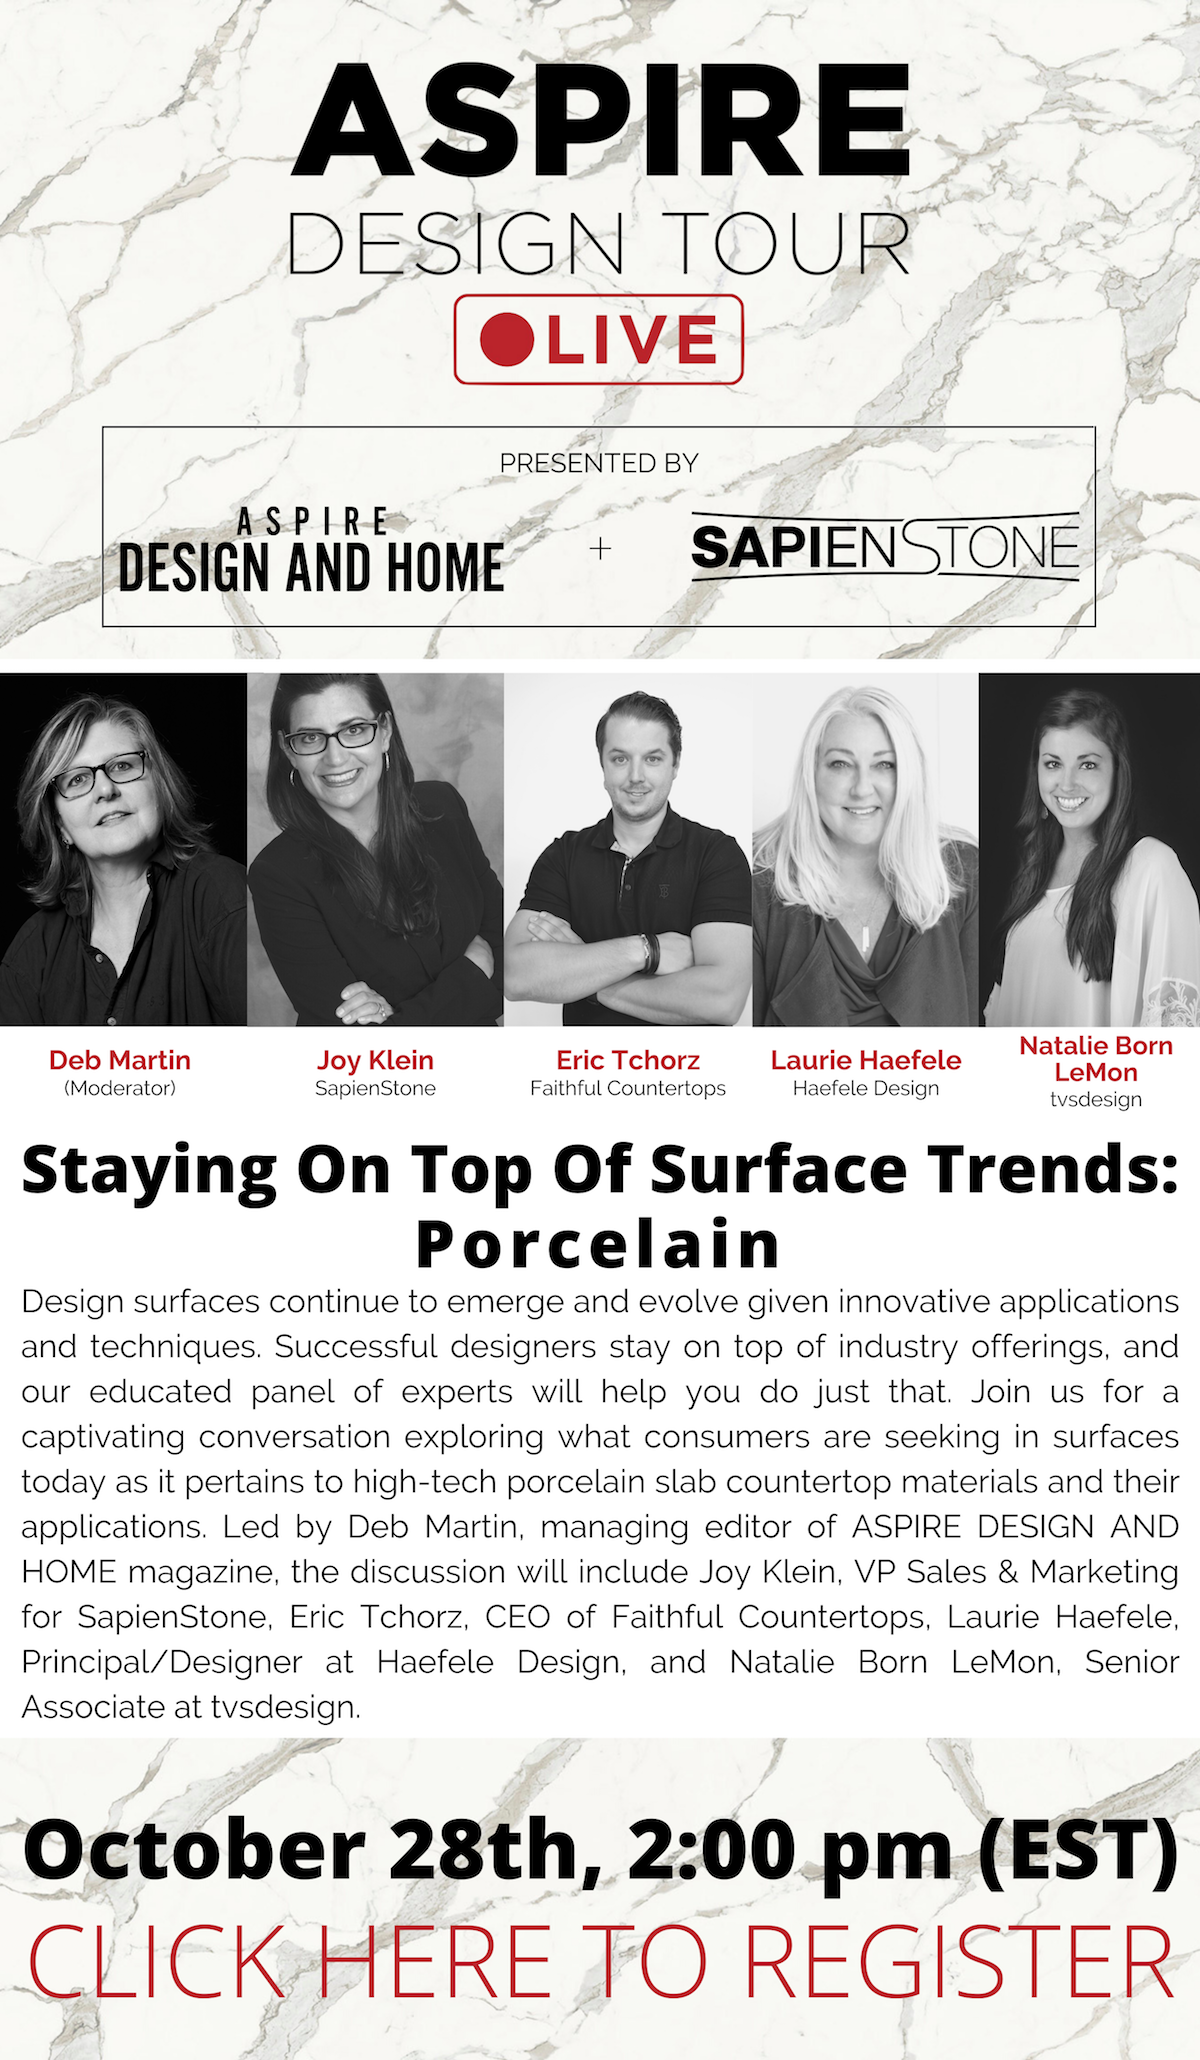 ASPIRE DESIGN AND HOME:Stay On Top Of Surface Trends With These Porcelain Experts